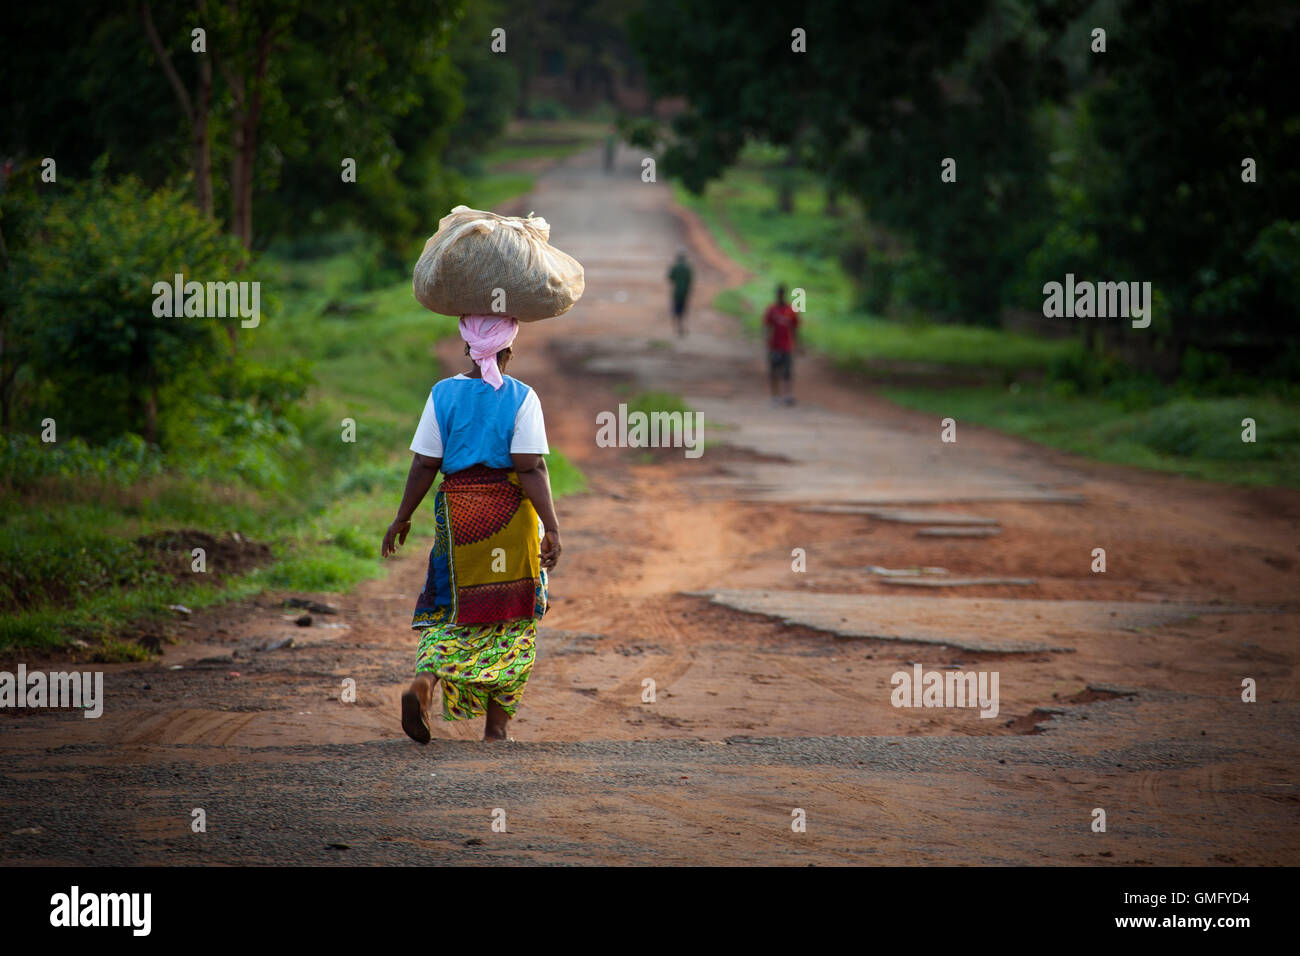 Yongoro, Sierra Leone - June 10, 2013: West Africa, the main road of Yongoro, village in front of Freetown - Stock Image